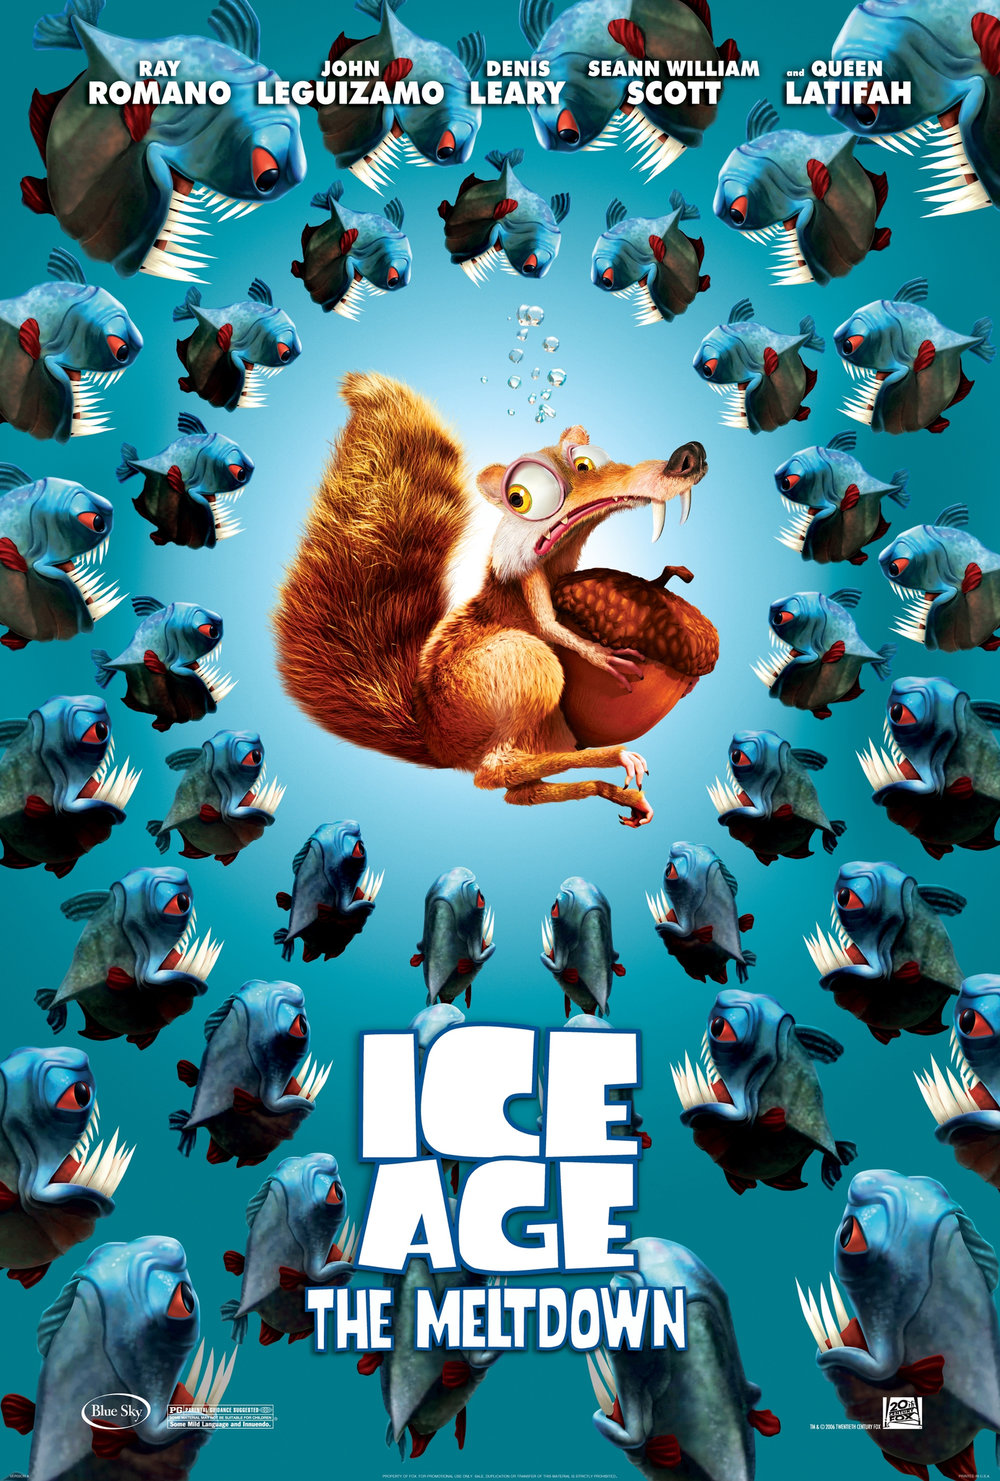 Ice Age: The Meltdown - Lighting Technical Director @ Blue Sky Studios